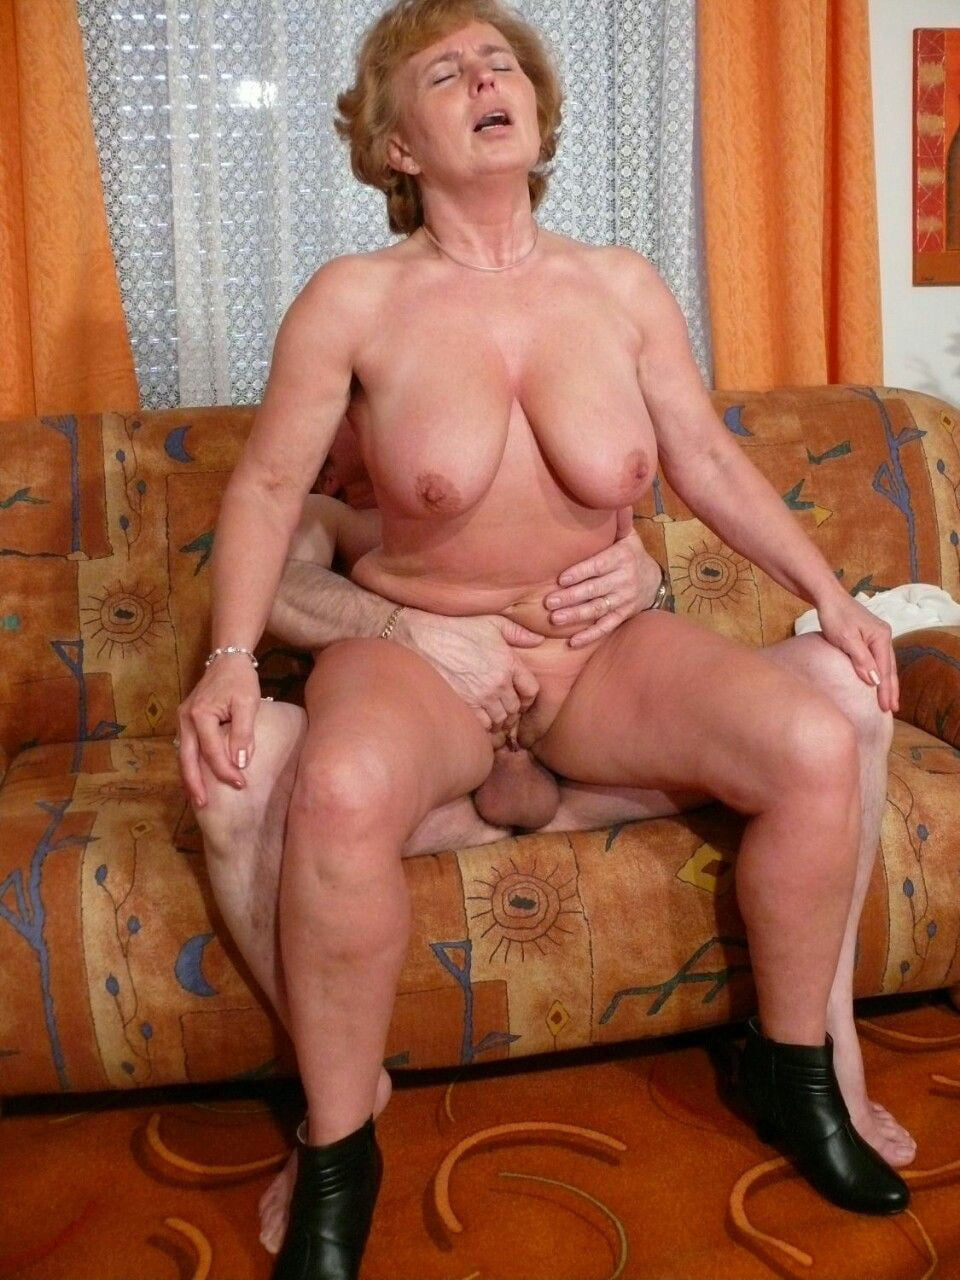 grannies-sex-mature-funny-animated-nude